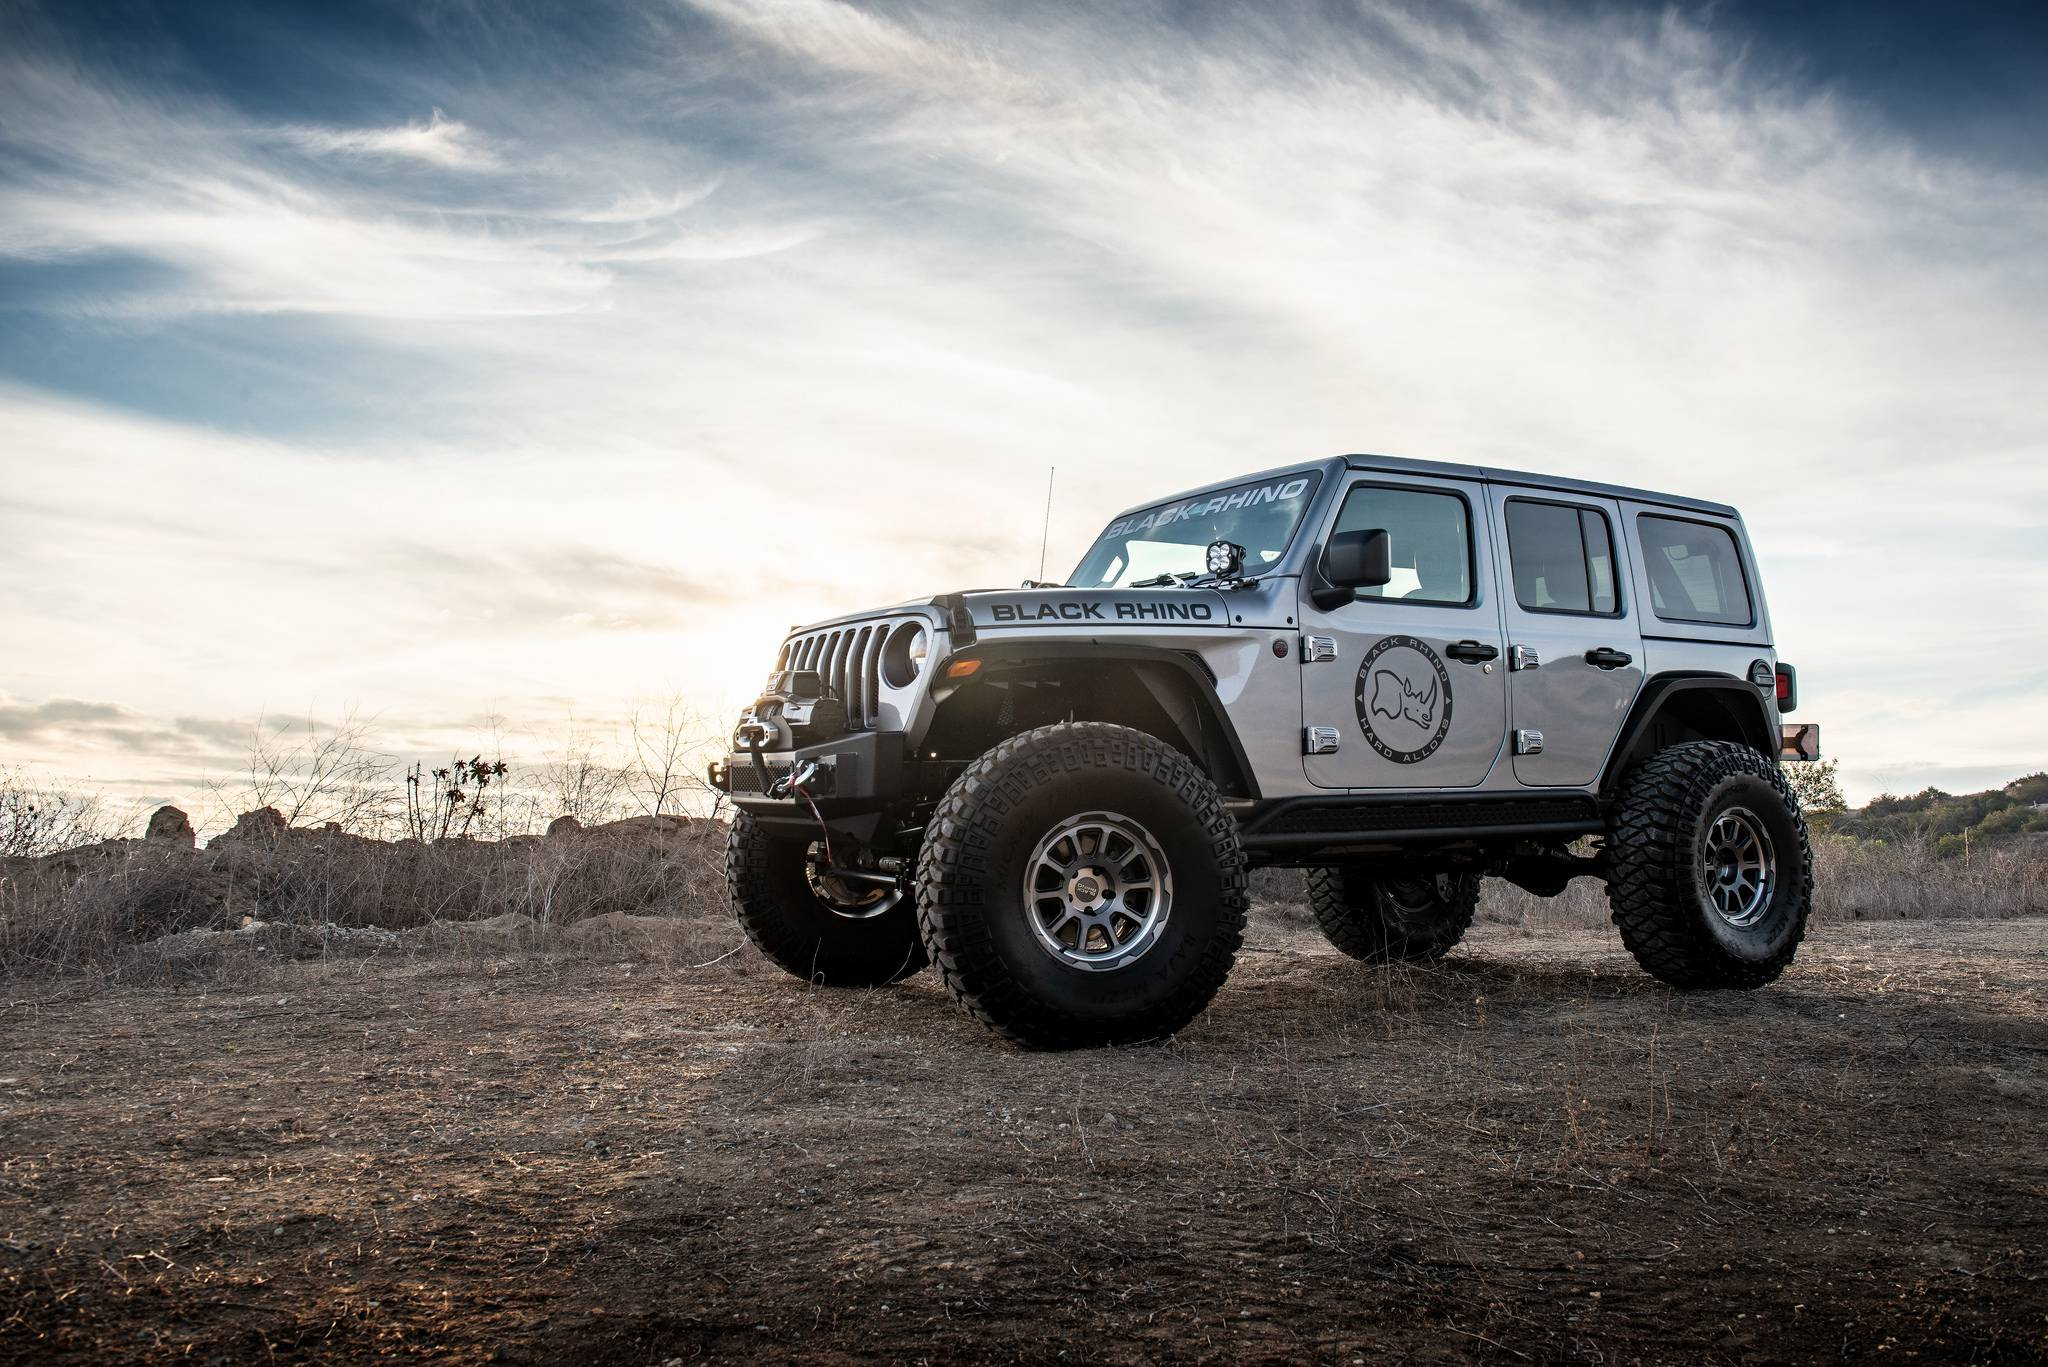 All White Cars Wallpaper 17 Jeep Wrangler Rubicon Jlu 2018 Hd High Quality Images